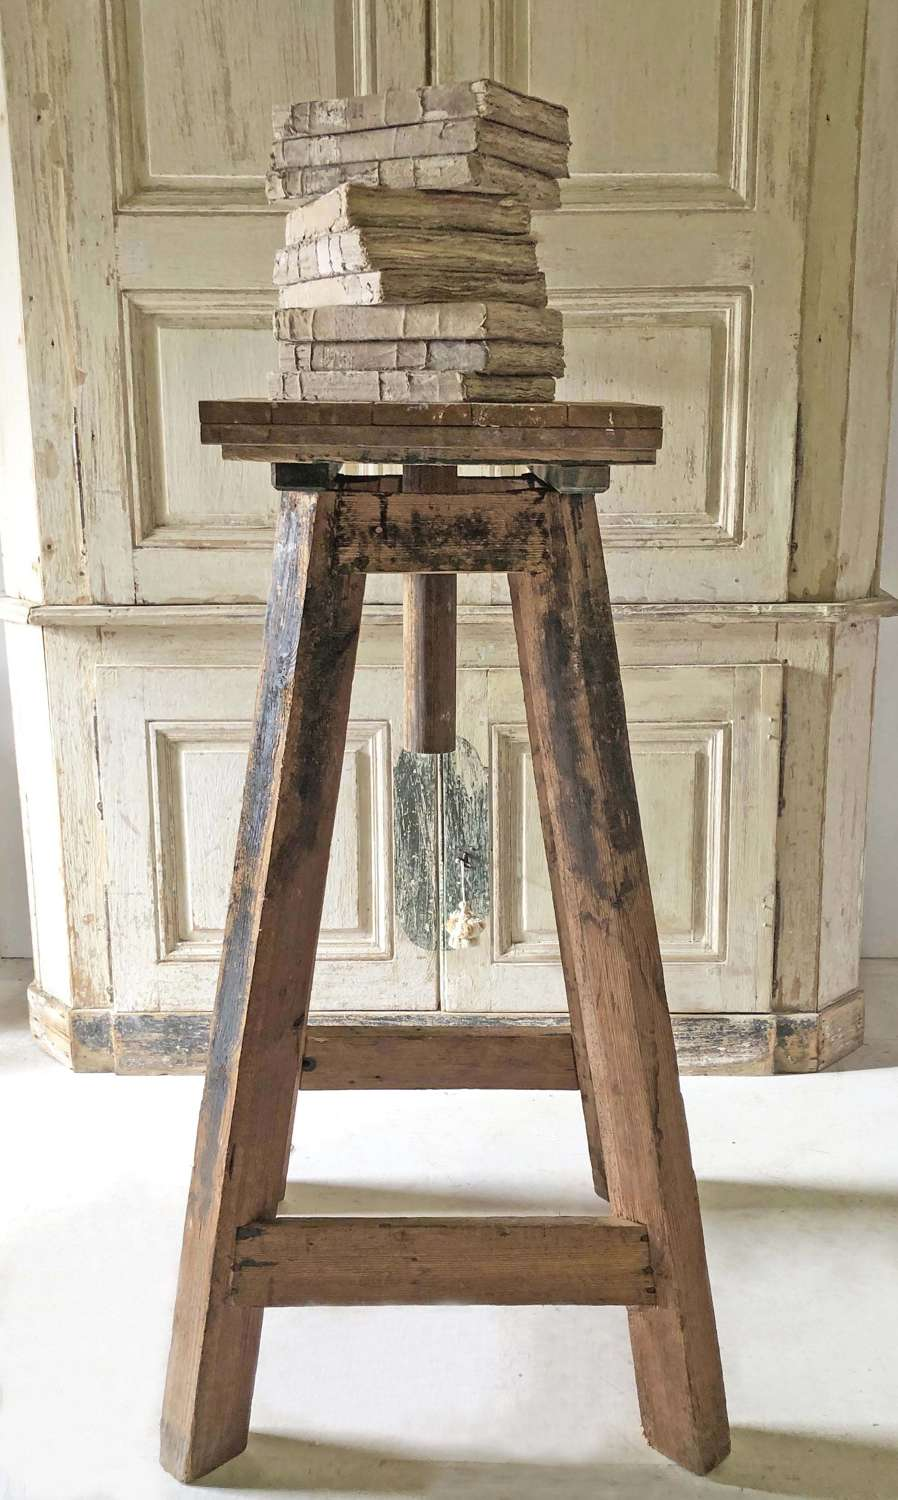 19th century French Tall Sculptor's Stand - Circa 1870